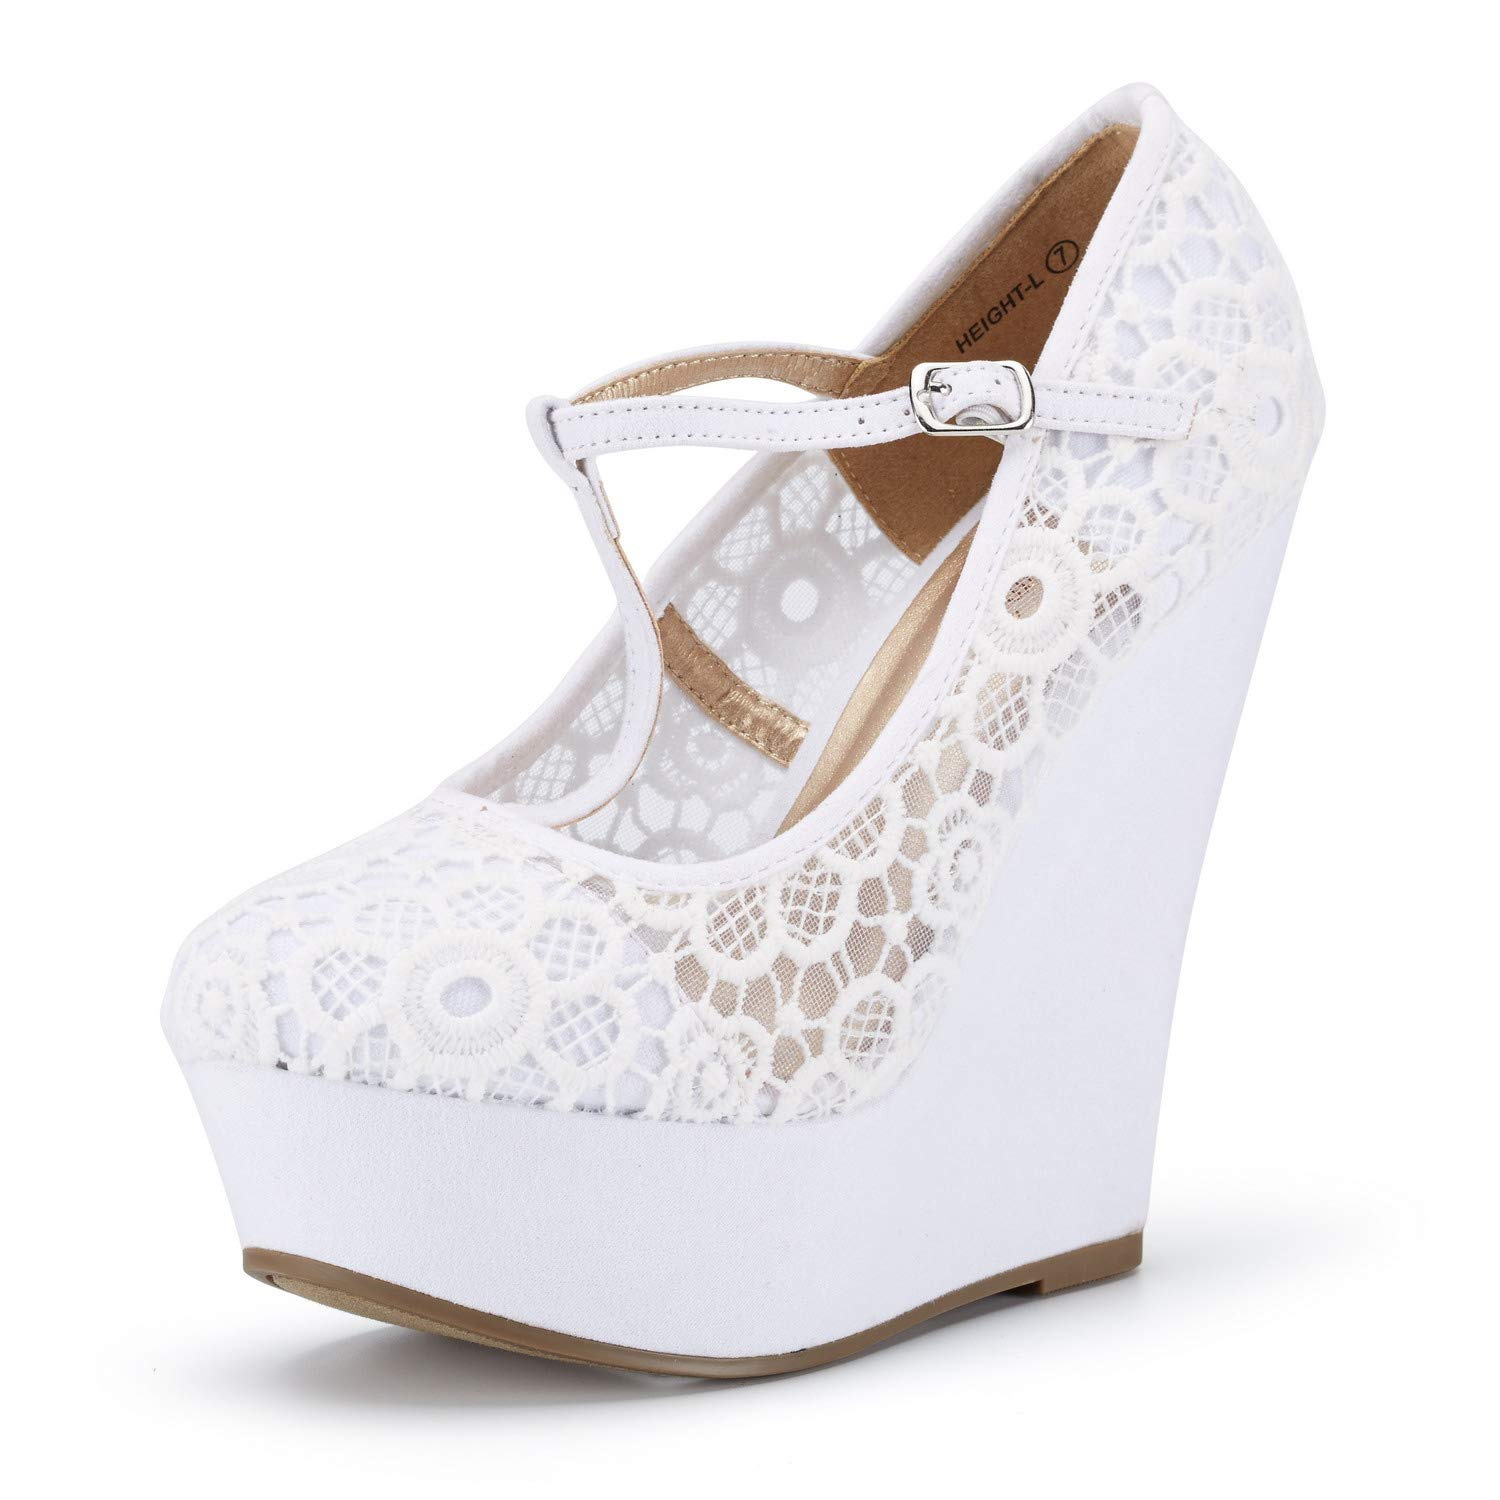 DREAM PAIRS Women's Wedge-Height-l White Lace Crochet Mary-Jane T-Strap Wedge Platform Pumps Shoes Size 6 B(M) US